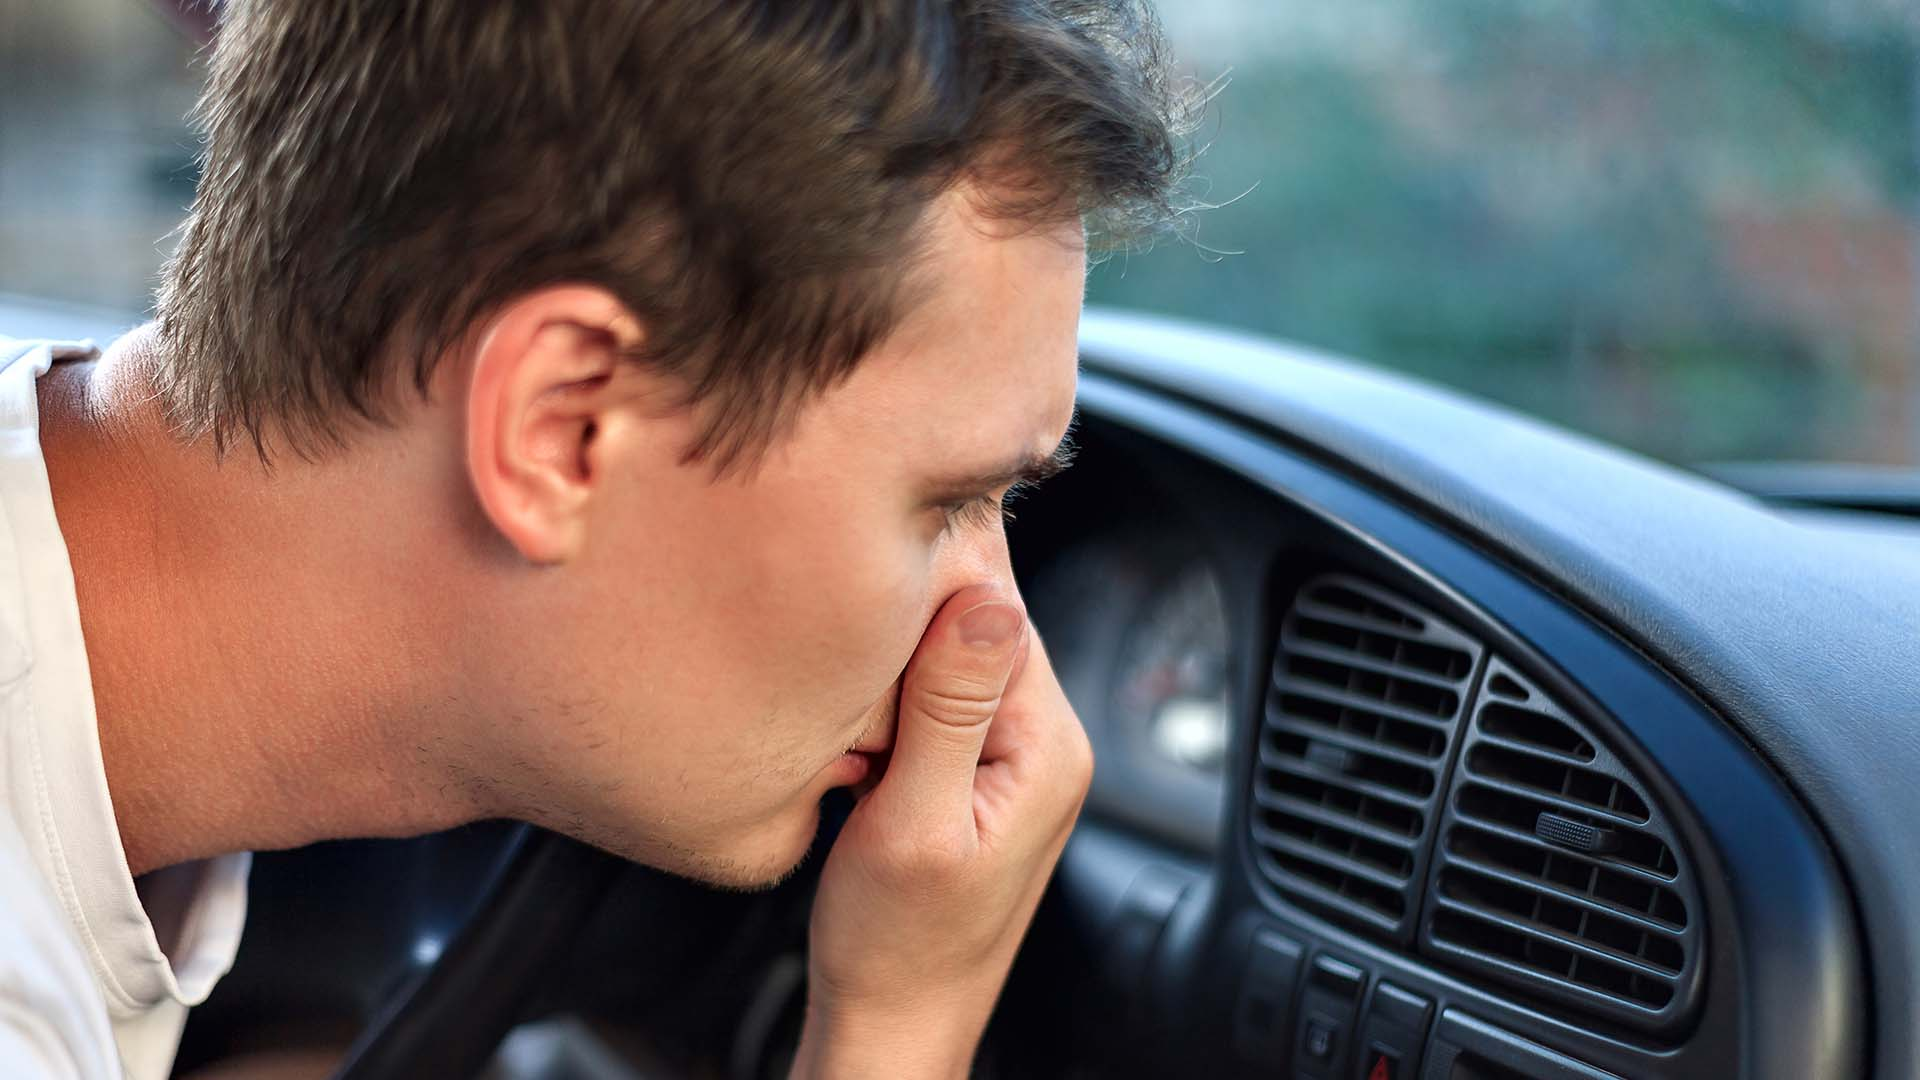 Man noticing a bad smell coming from car AC vents